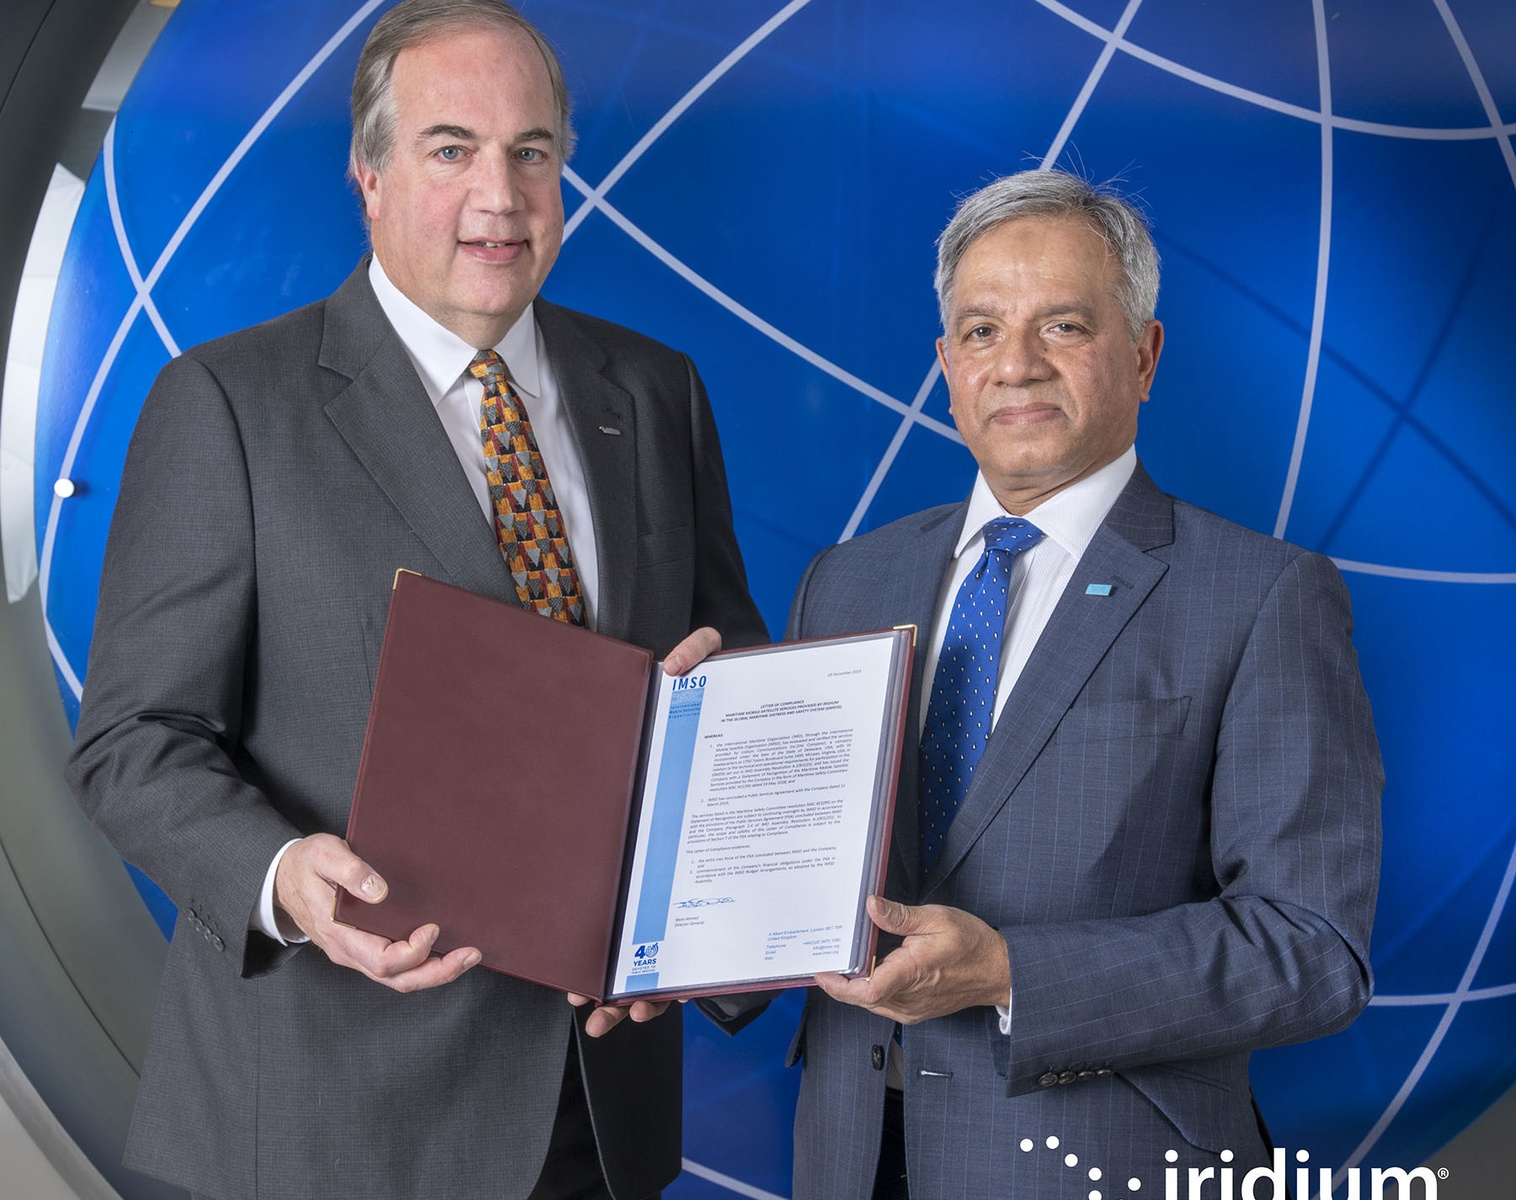 Iridium is Now Formally Authorized to Provide GMDSS Service